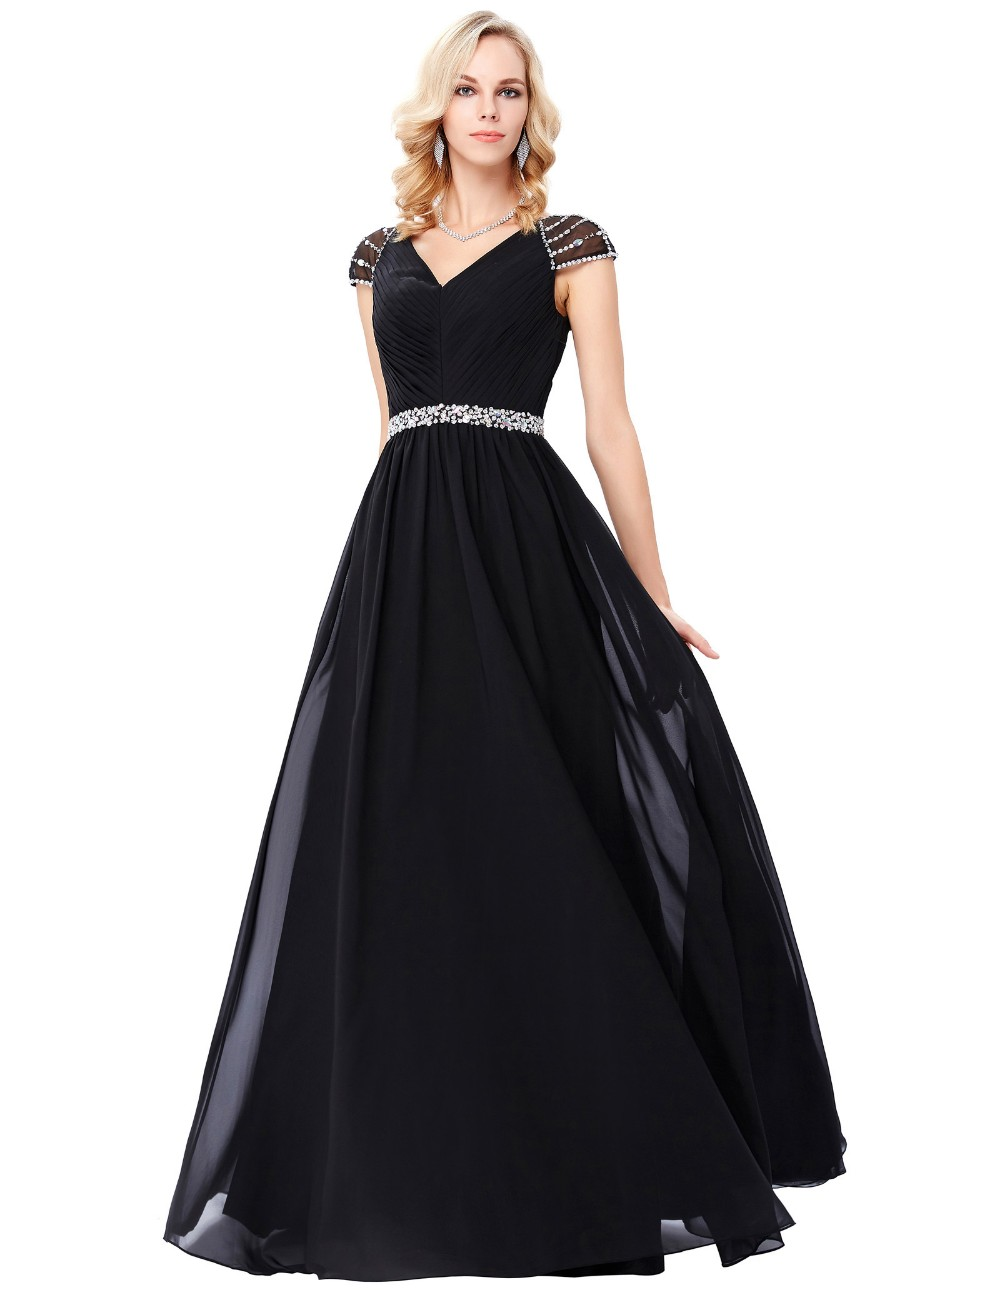 Grace Karin Cap Sleeve V-Neck Black Long Chiffon Prom Dress 8 Size US 2~16 GK000135-1